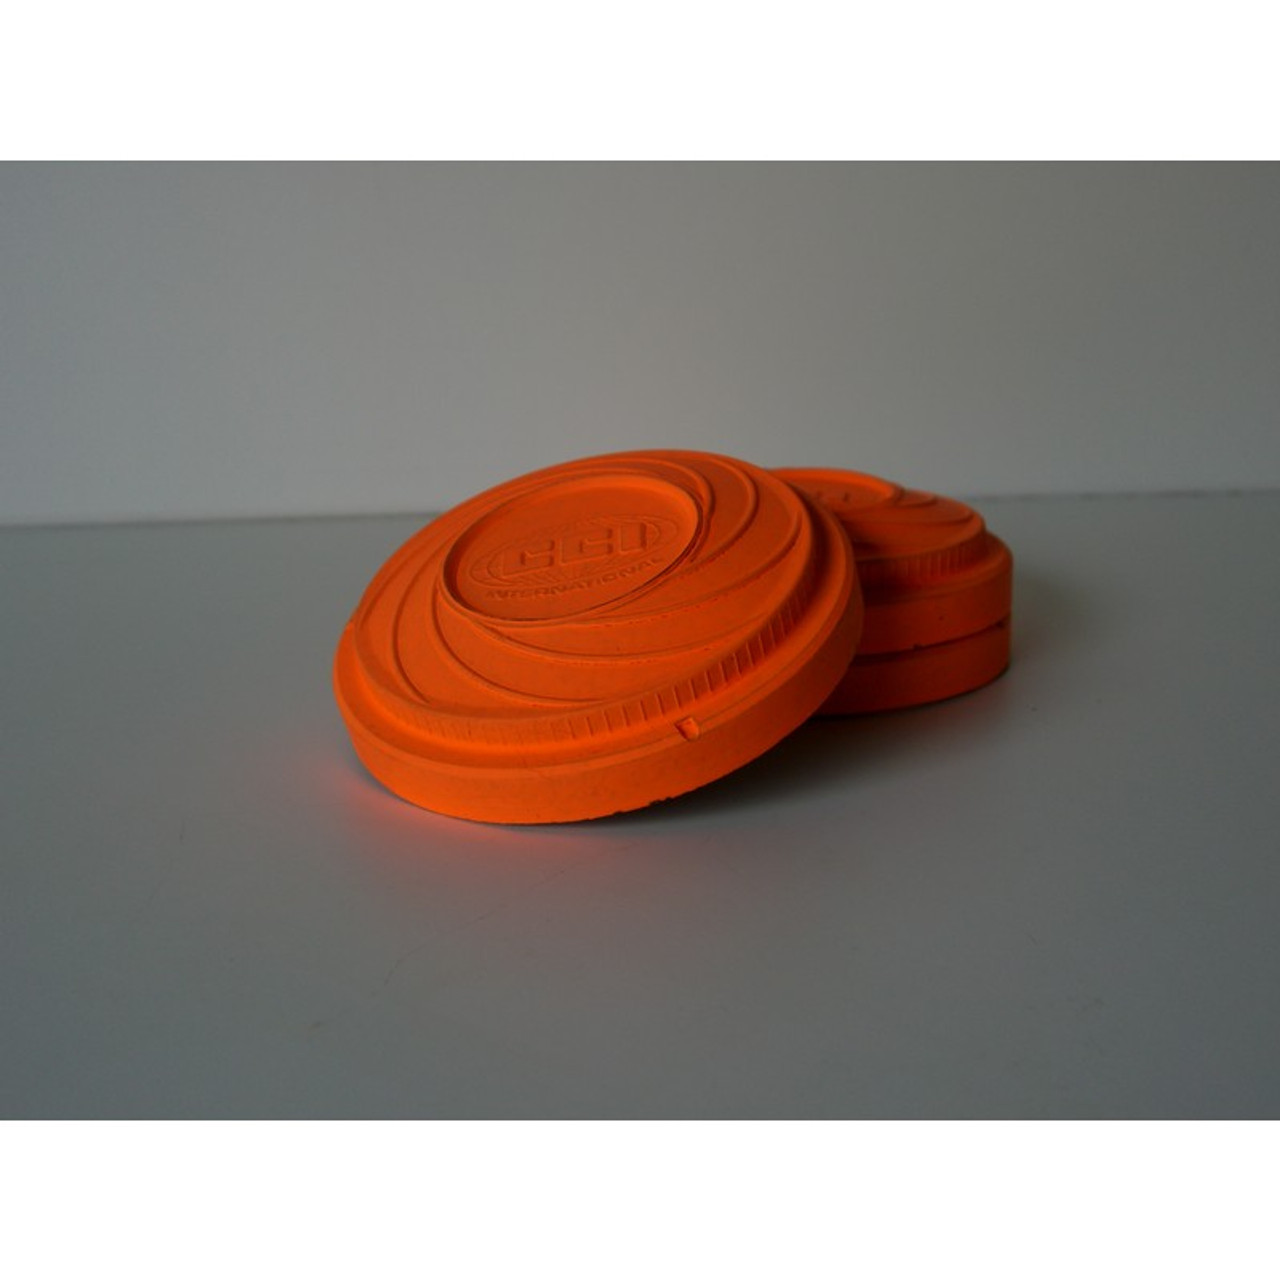 CCI Midi Blaze Clays, buy at cheap rates from bradford stalkerCCI Midi Blaze Clays, buy at cheap rates from bradford stalker